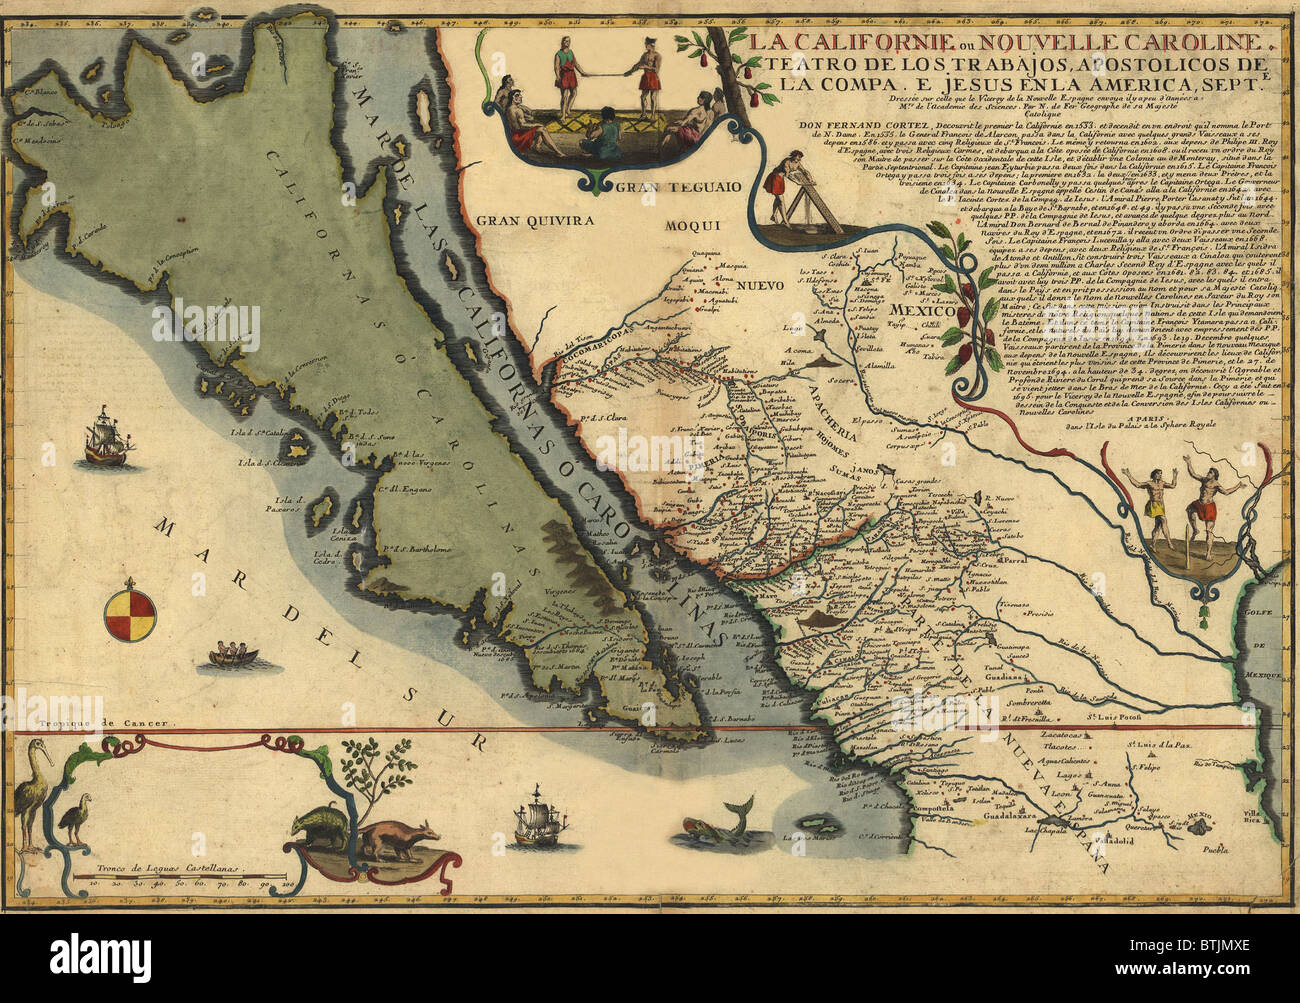 1720 map of Baja California and northwest Mexico showing